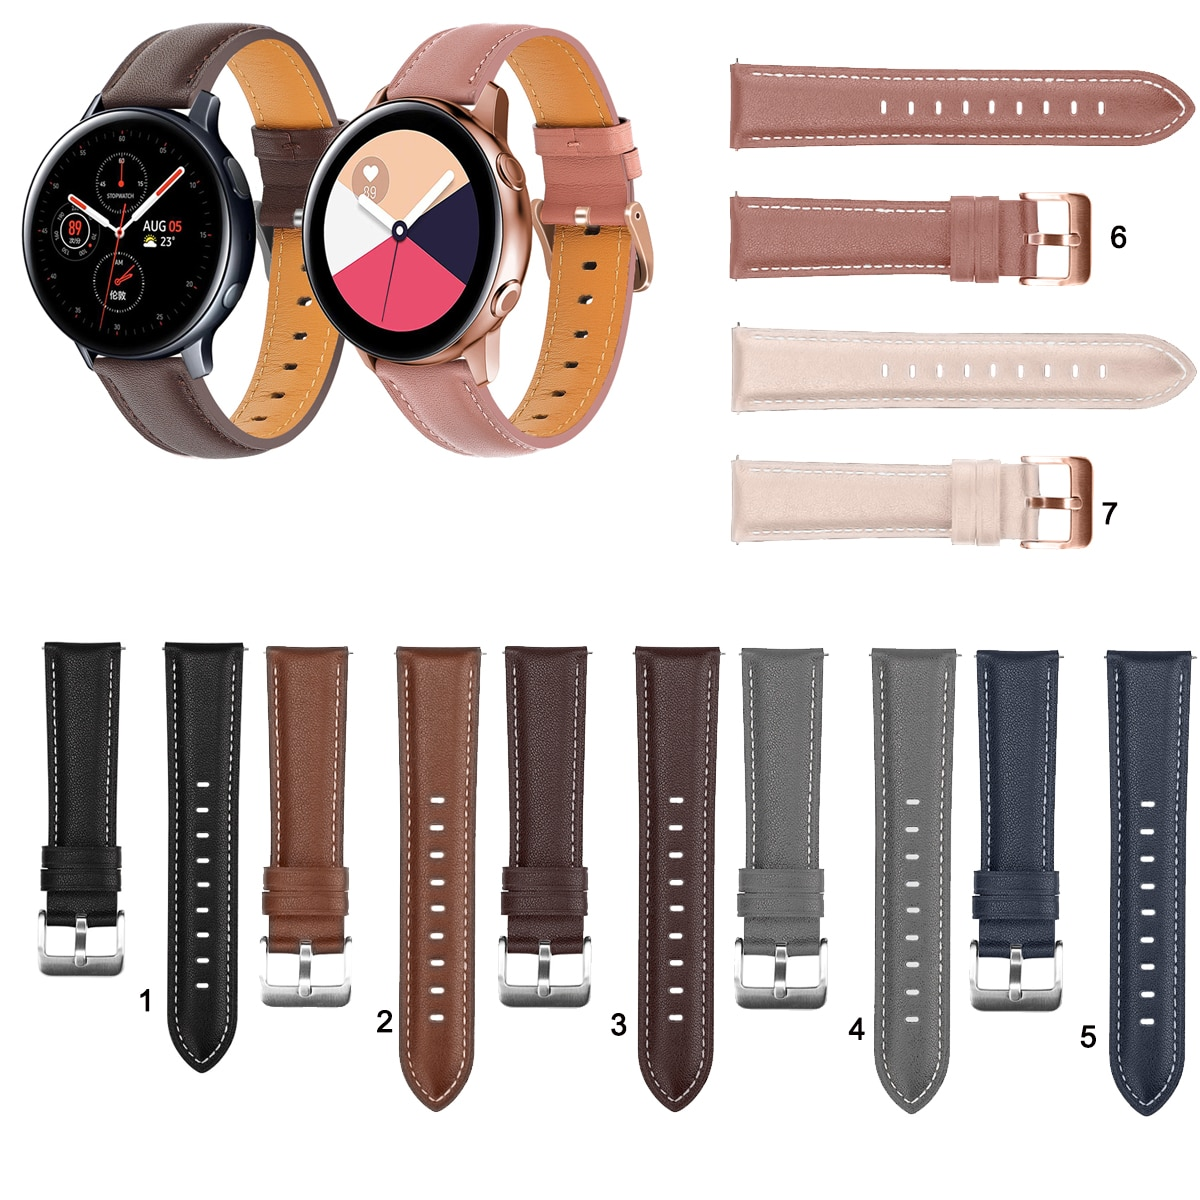 20mm 22mm Fashion Leather Watch Band Strap for Samsung Galaxy Watch Active 2 40mm 44mm Replacement Wrist strap Elegant Bracele